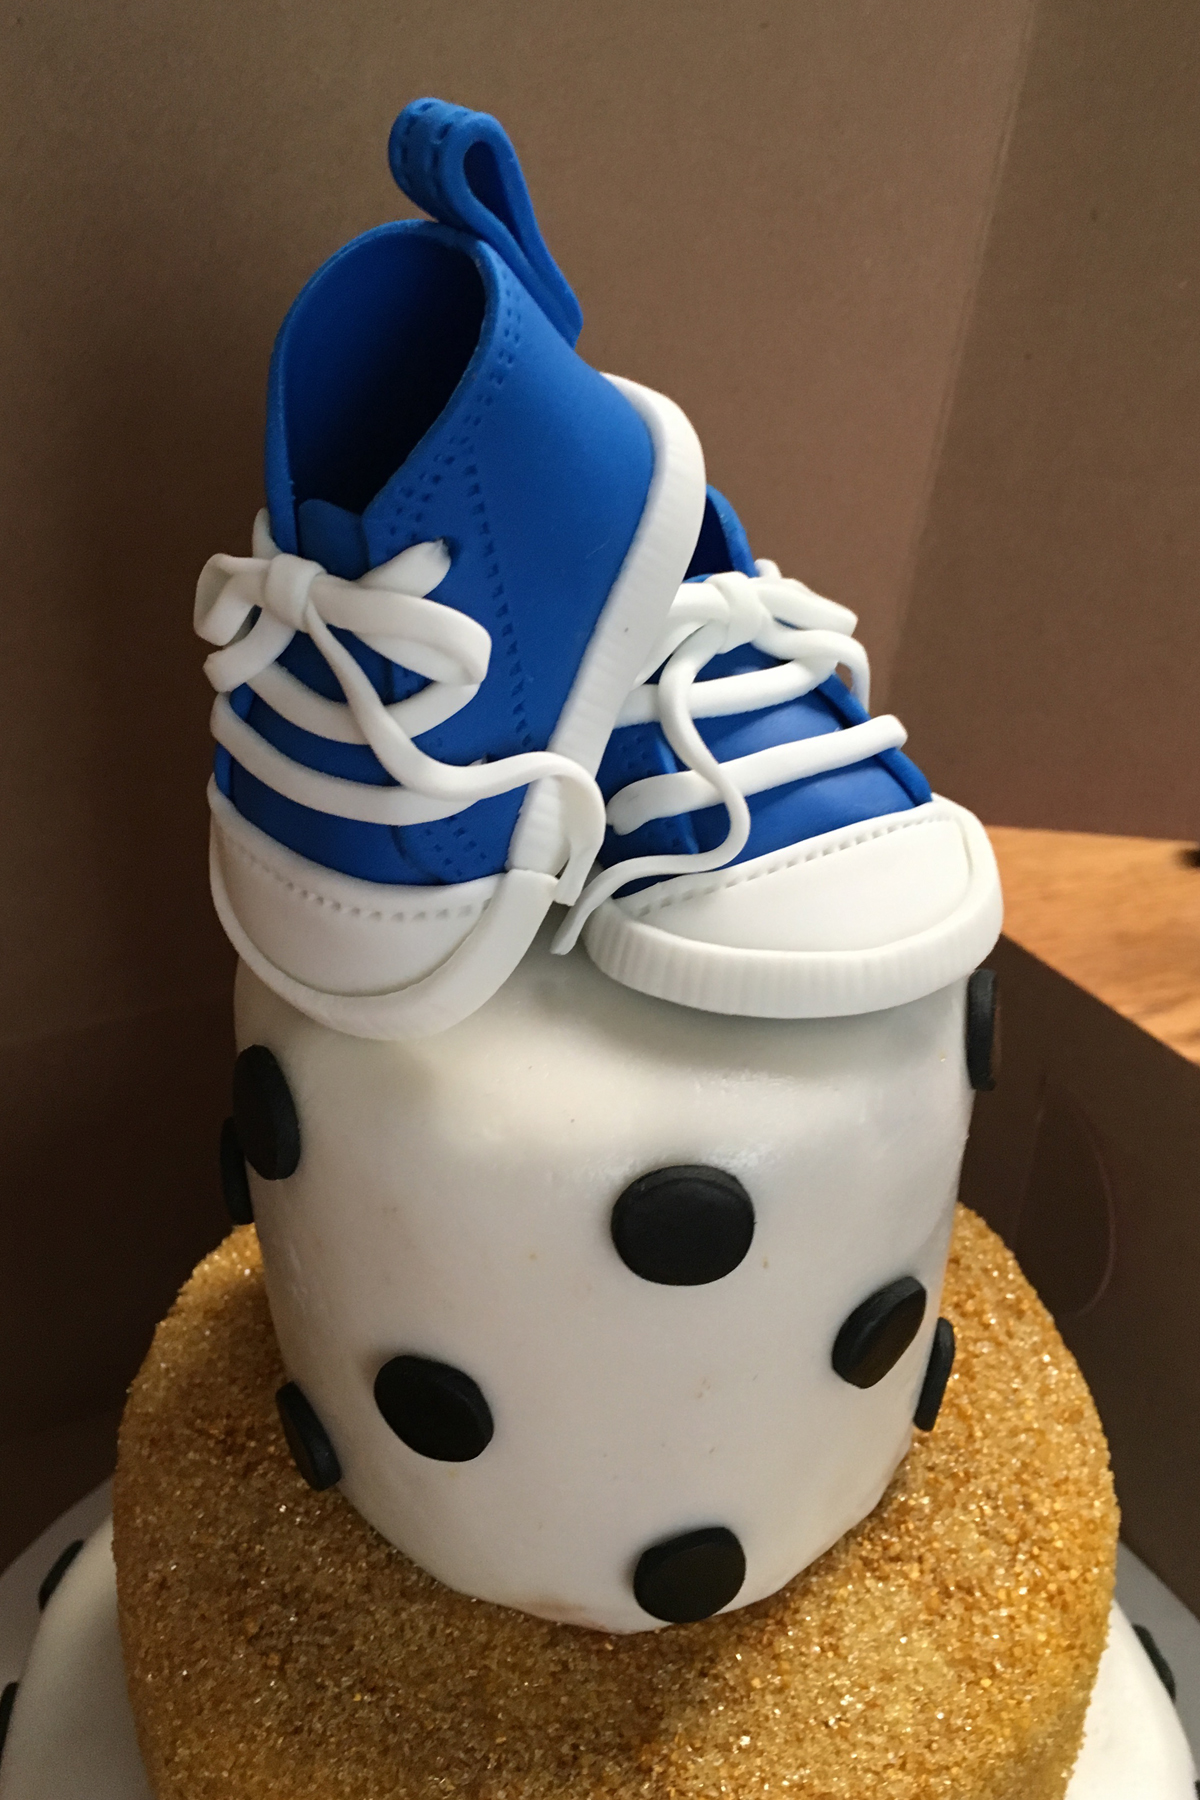 Black & White Baby Shower Cake with Blue Sneakers!